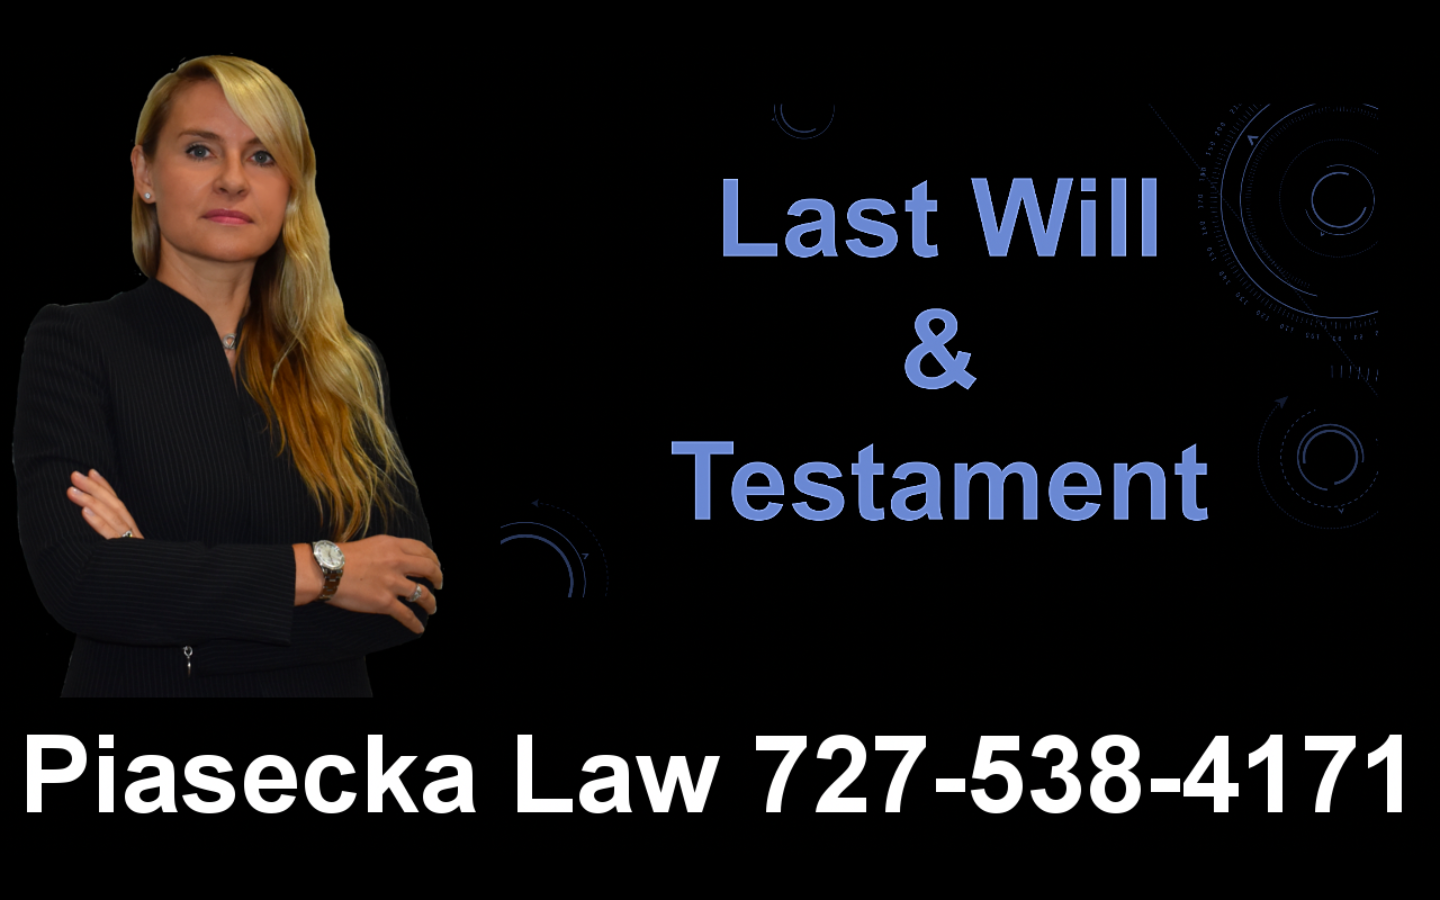 Last Will and Testament, Clearwater, Florida, Lawyer, Attorney, Agnieszka, Aga, Piasecka